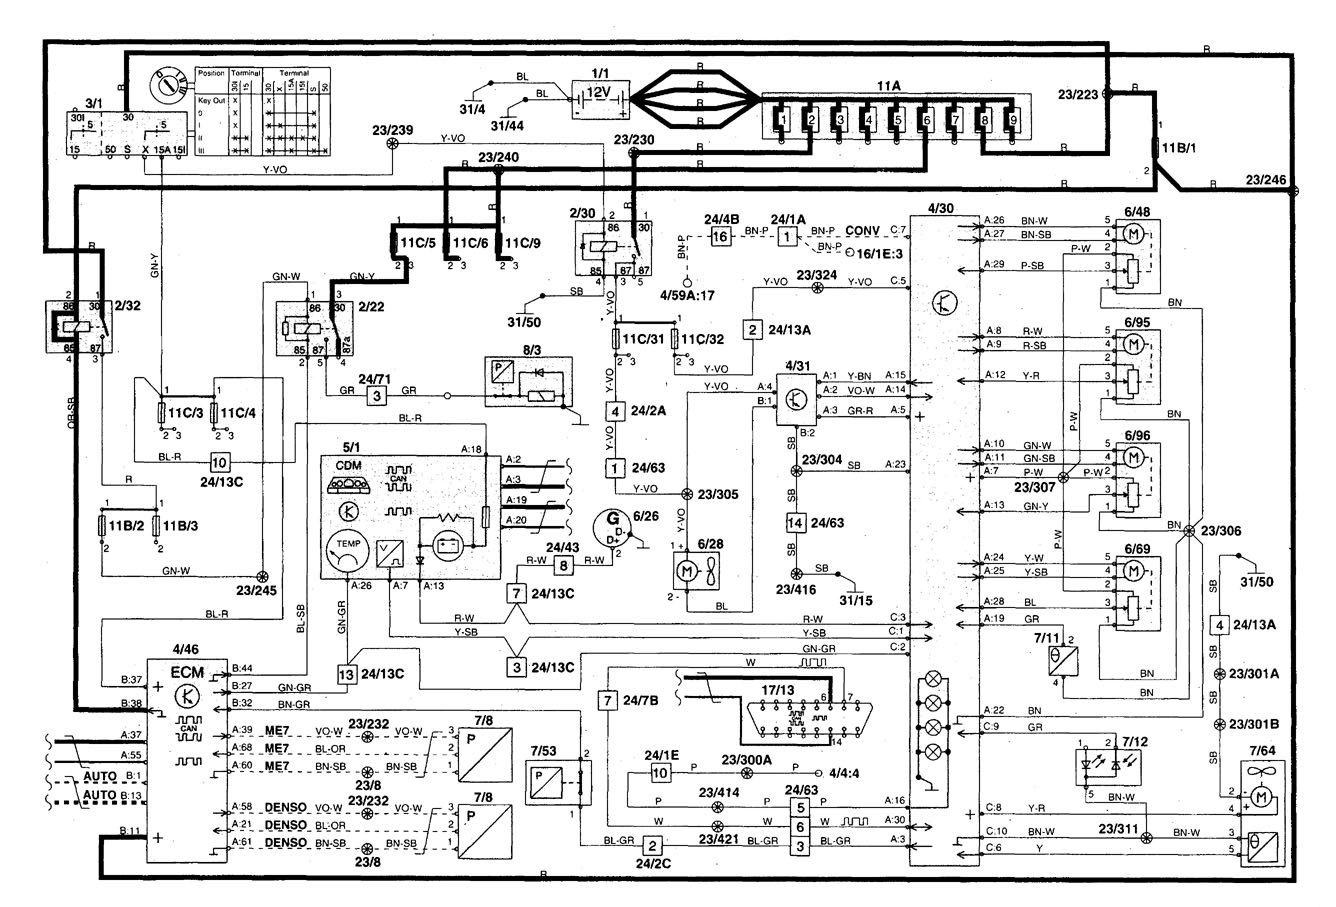 Volvo Wiring Diagrams C70 - Wiring Diagrams Button pale-amber -  pale-amber.lamorciola.it | Volvo Wiring Diagrams C70 |  | pale-amber.lamorciola.it